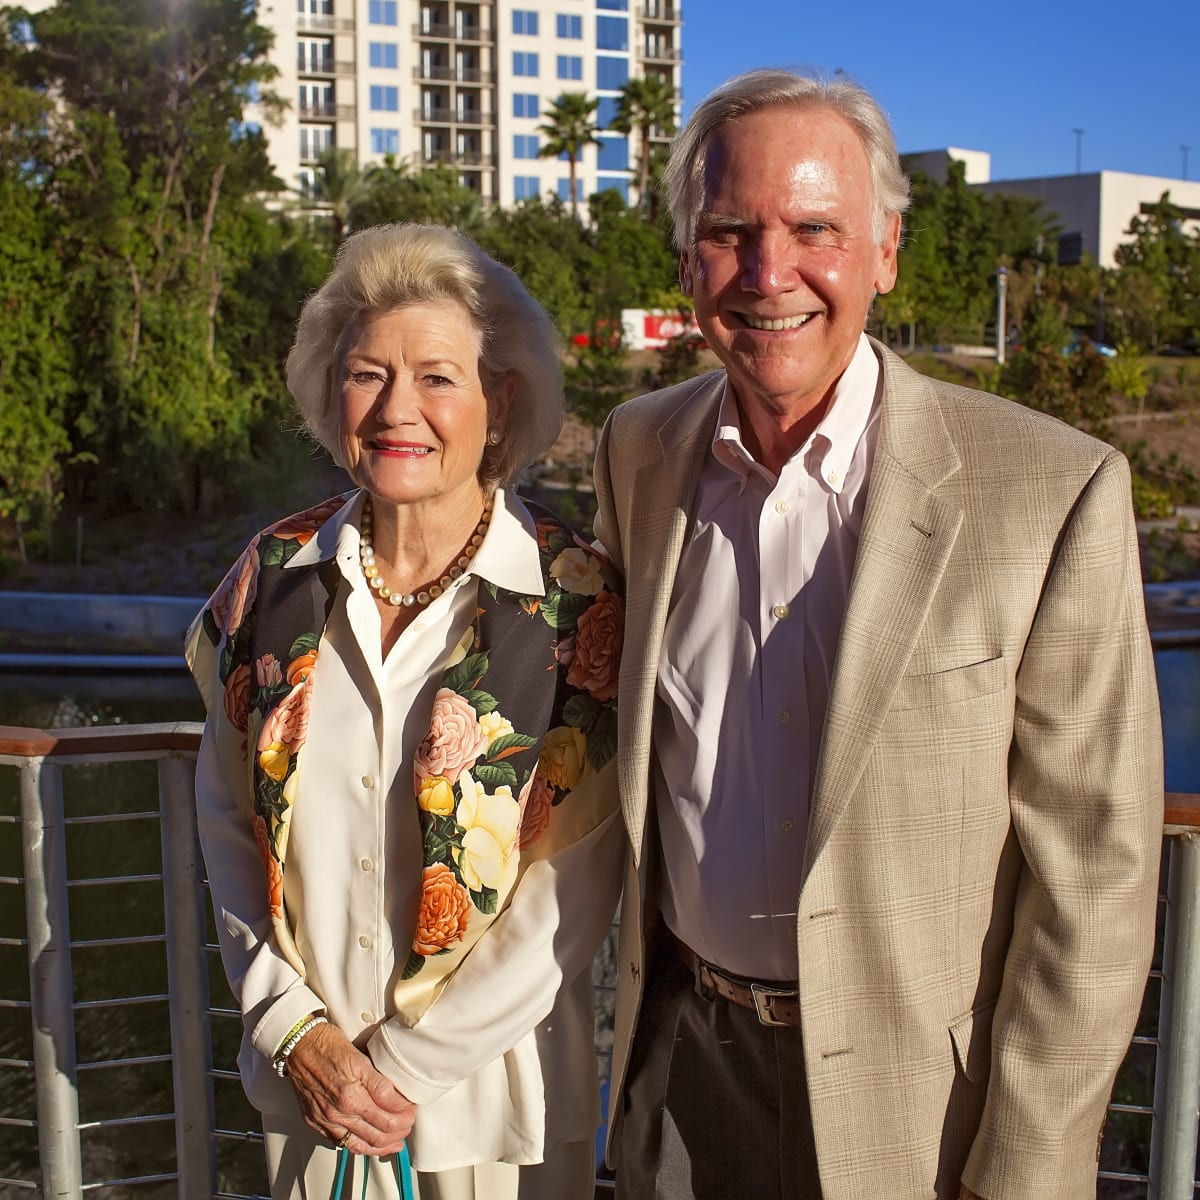 News, Shelby, Lost Lake, Dunlavy party, Sept. 2015 Betsy and Bob Phillips